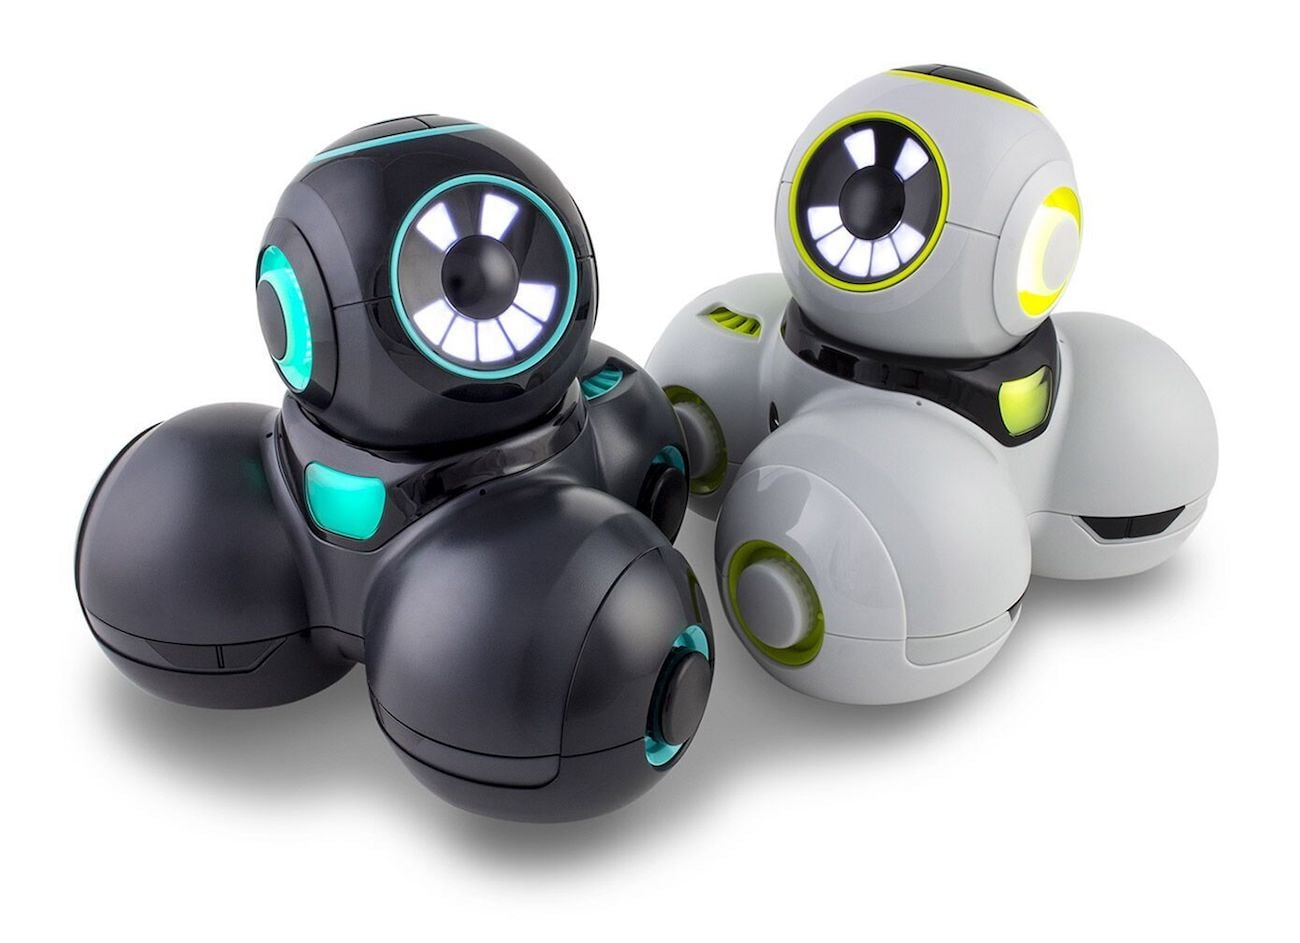 Cue CleverBot Educational Programming Robot